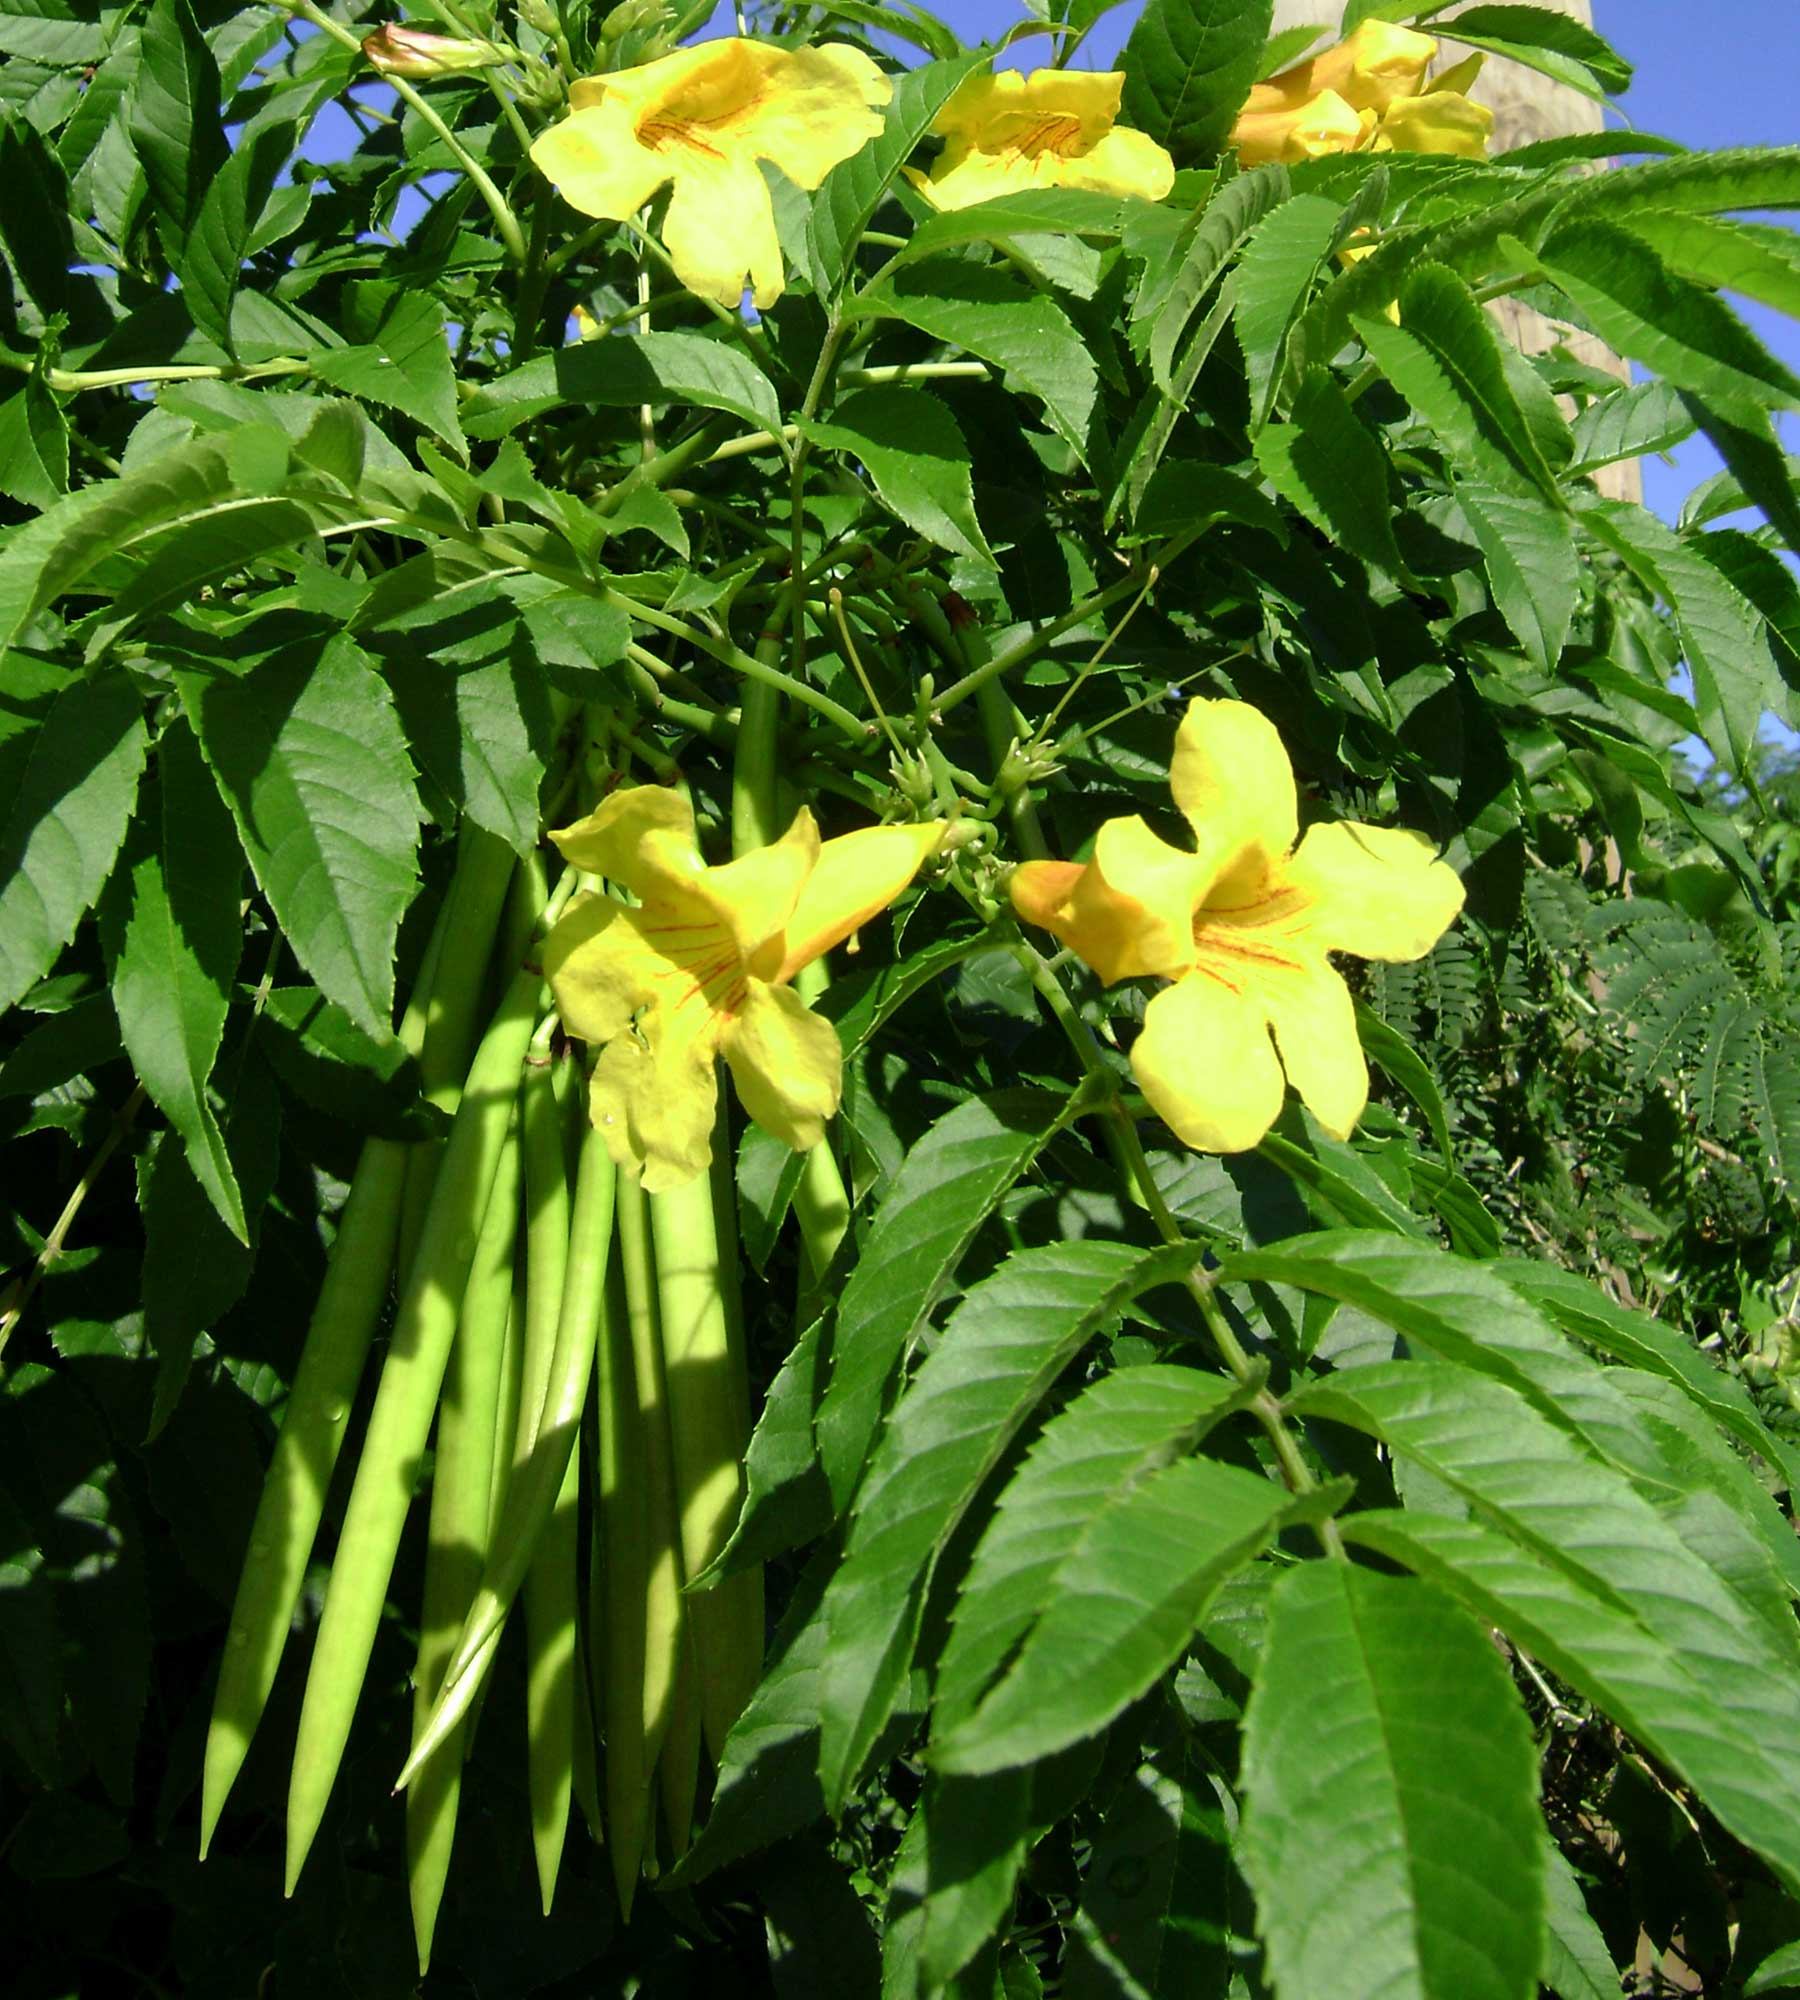 File:Tecoma stans, flowers+pods.jpg - Wikimedia Commons